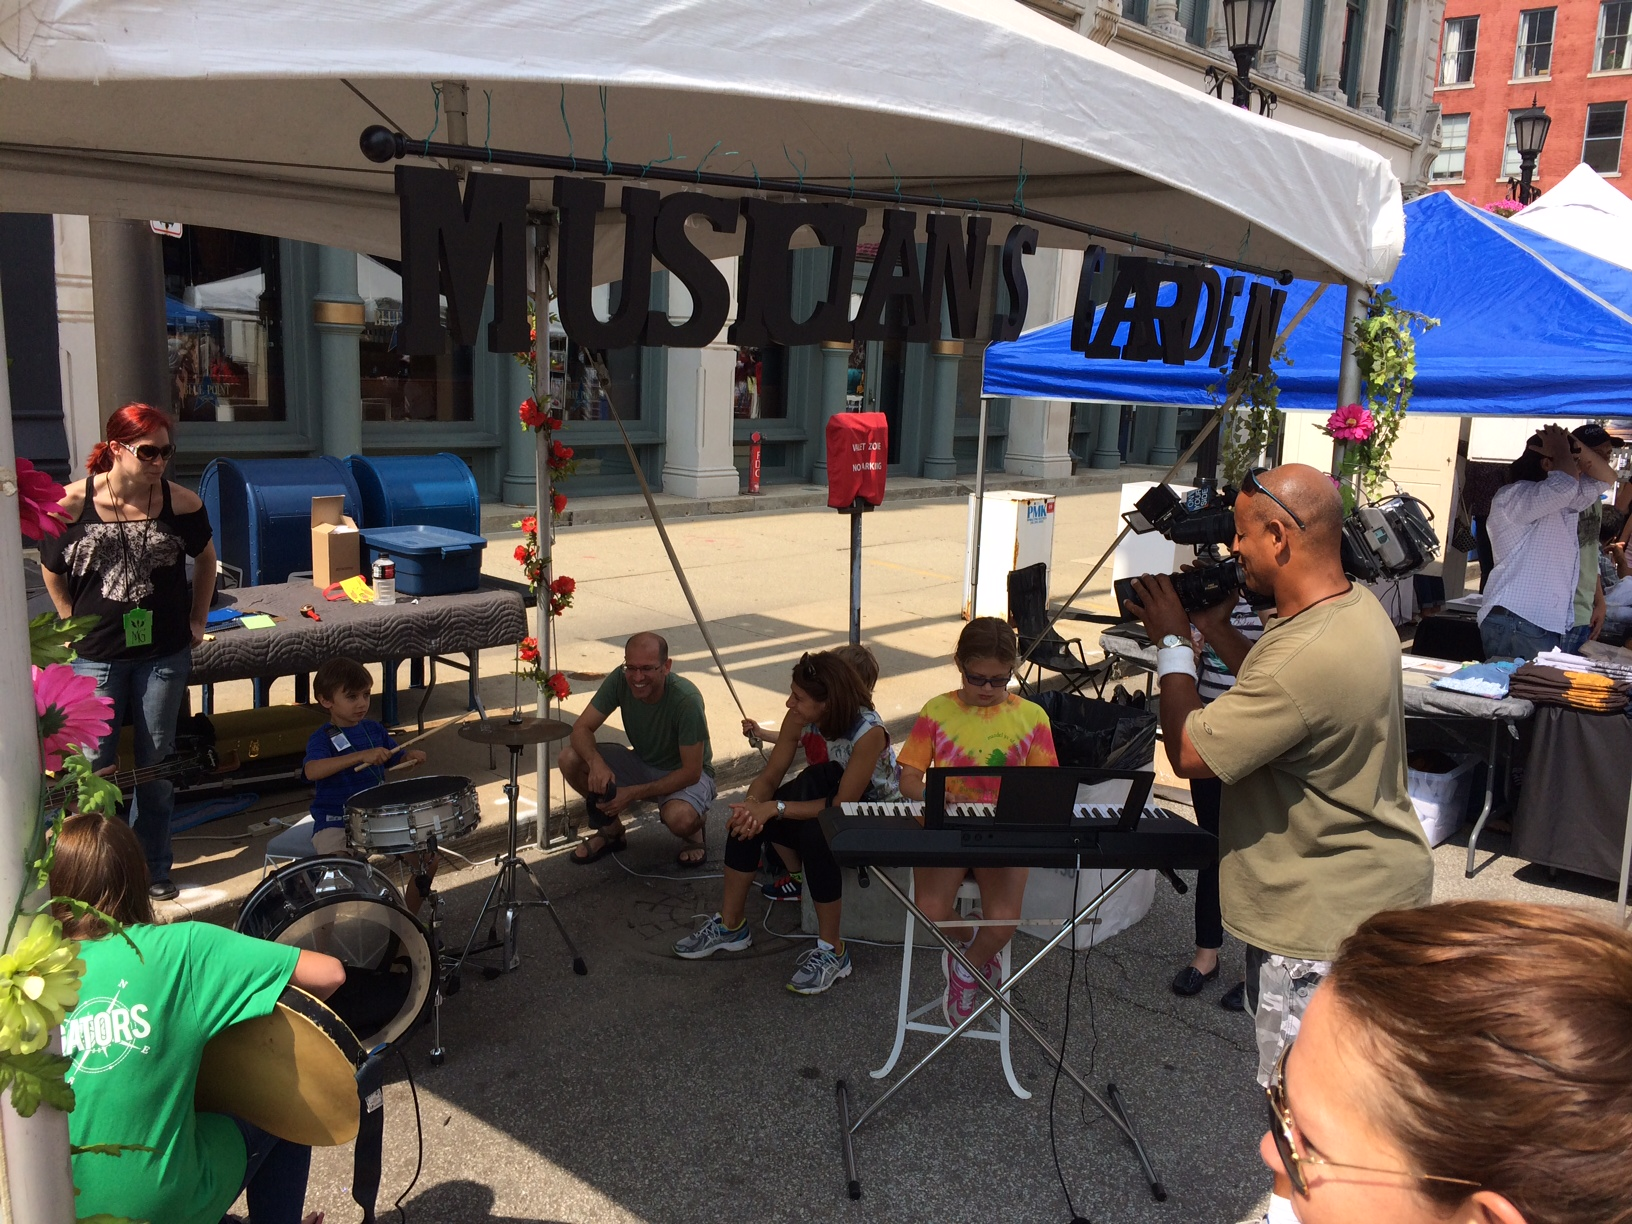 The Musicians Garden Booth was full of people of all ages playing music. Here a group of young kids makes music together for the first time as the local news cameraman captures the action.